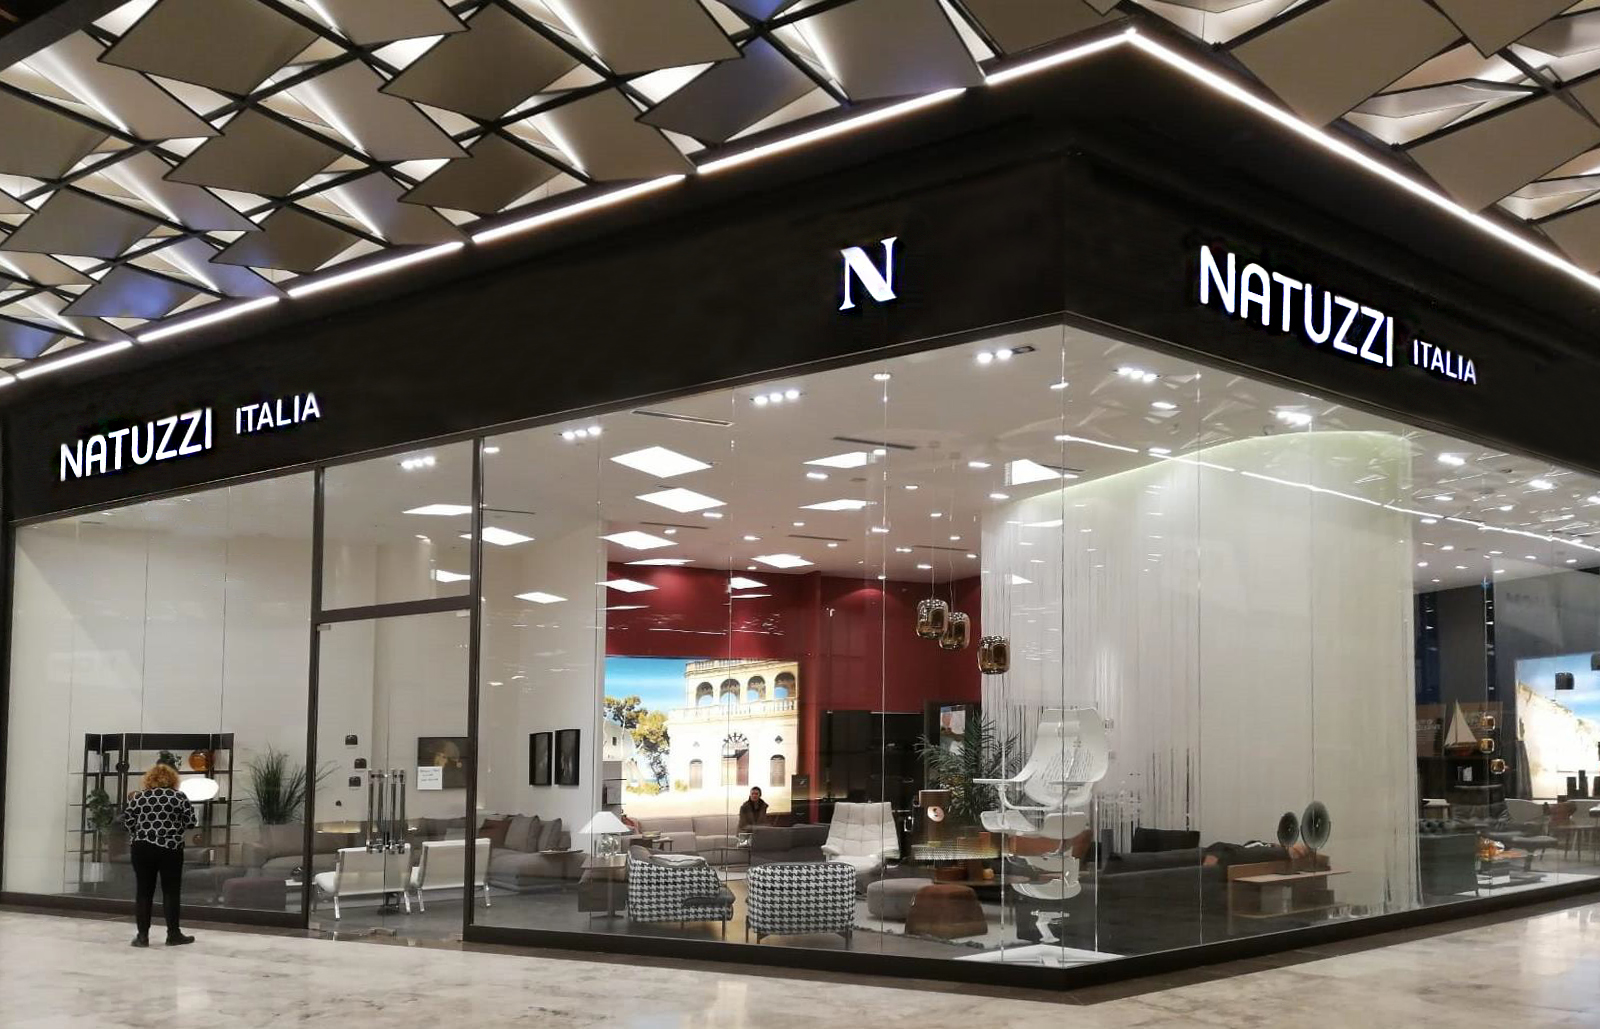 Natuzzi Italia Inaugurates A New Store In Istanbul Natuzzi Press Room